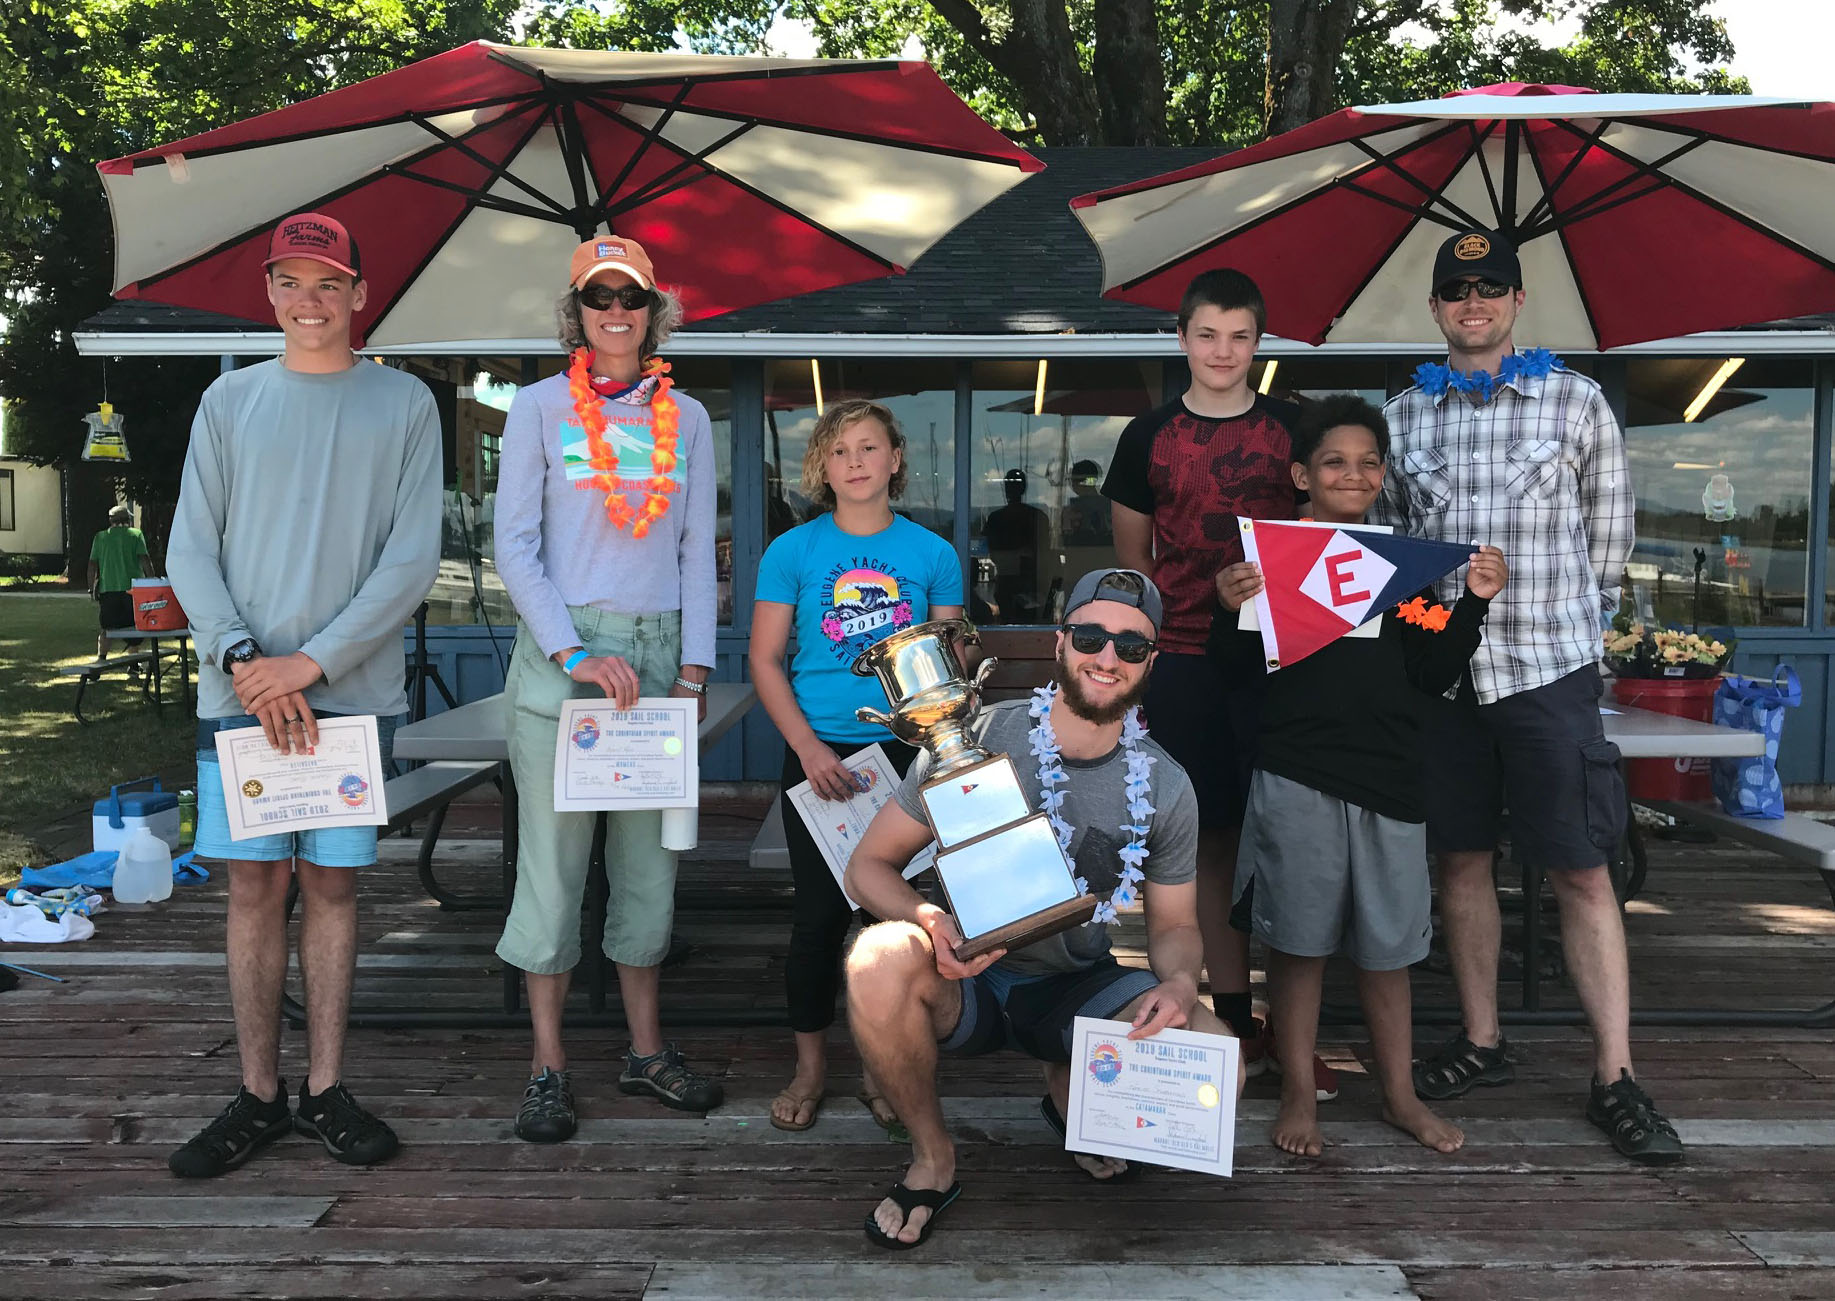 The Corinthian Spirit Award winners from 2019 EYC Sail School